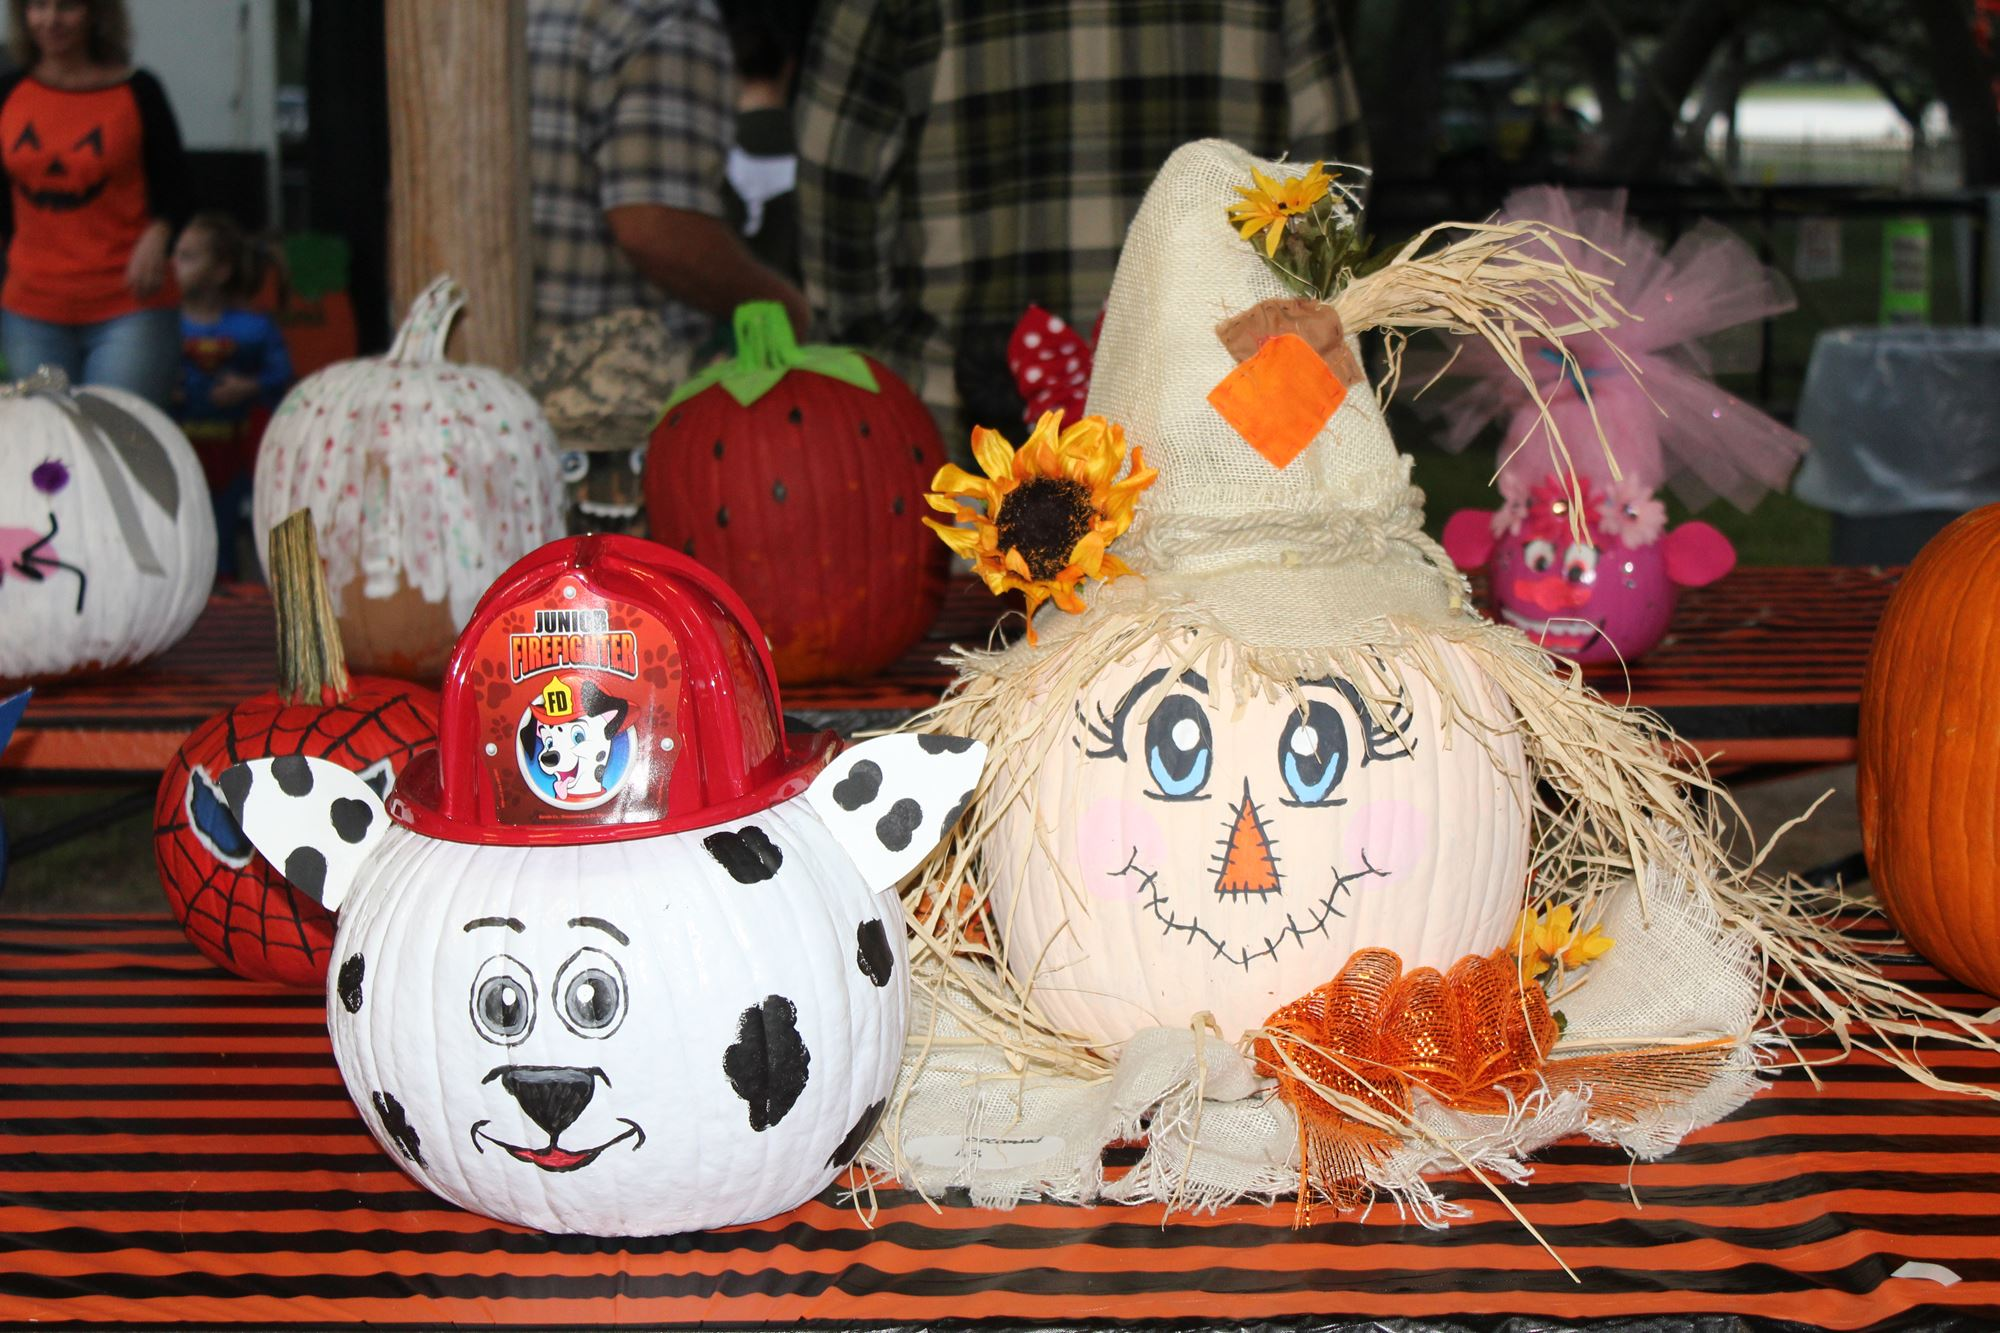 Carved/Decorated Pumpkin Contest